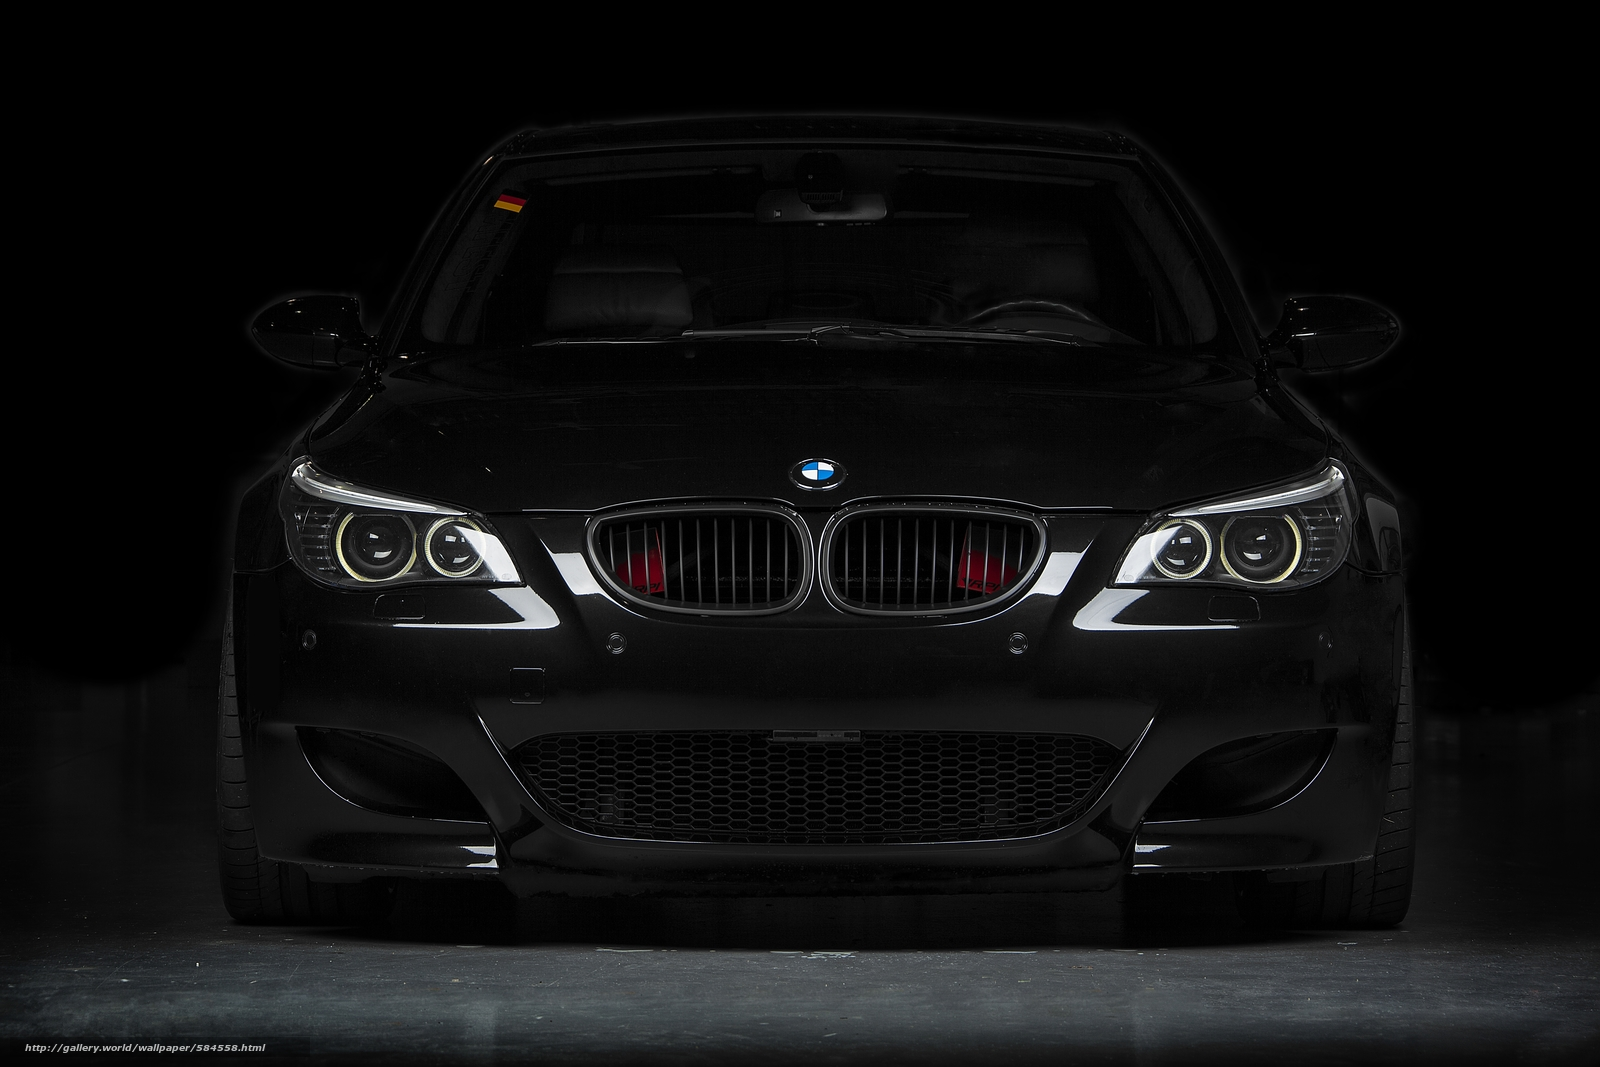 Download wallpaper bmw front black bmw free desktop wallpaper in the resolution 5616x3744 picture 584558